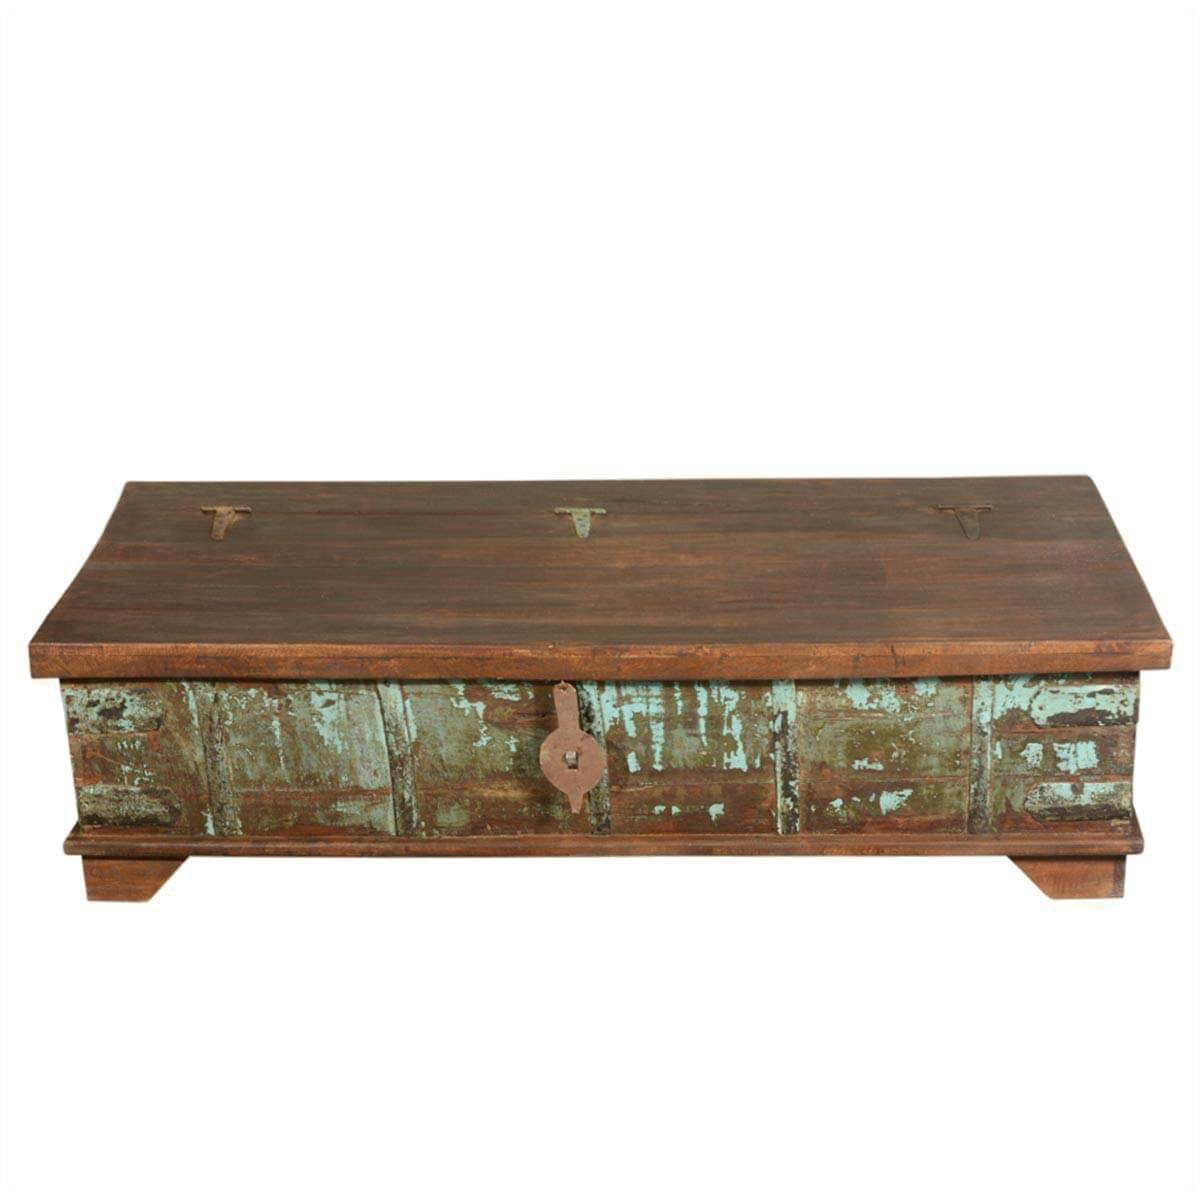 Mediterranean Rustic Reclaimed Wood Storage Trunk Coffee Table: recycled wood coffee table